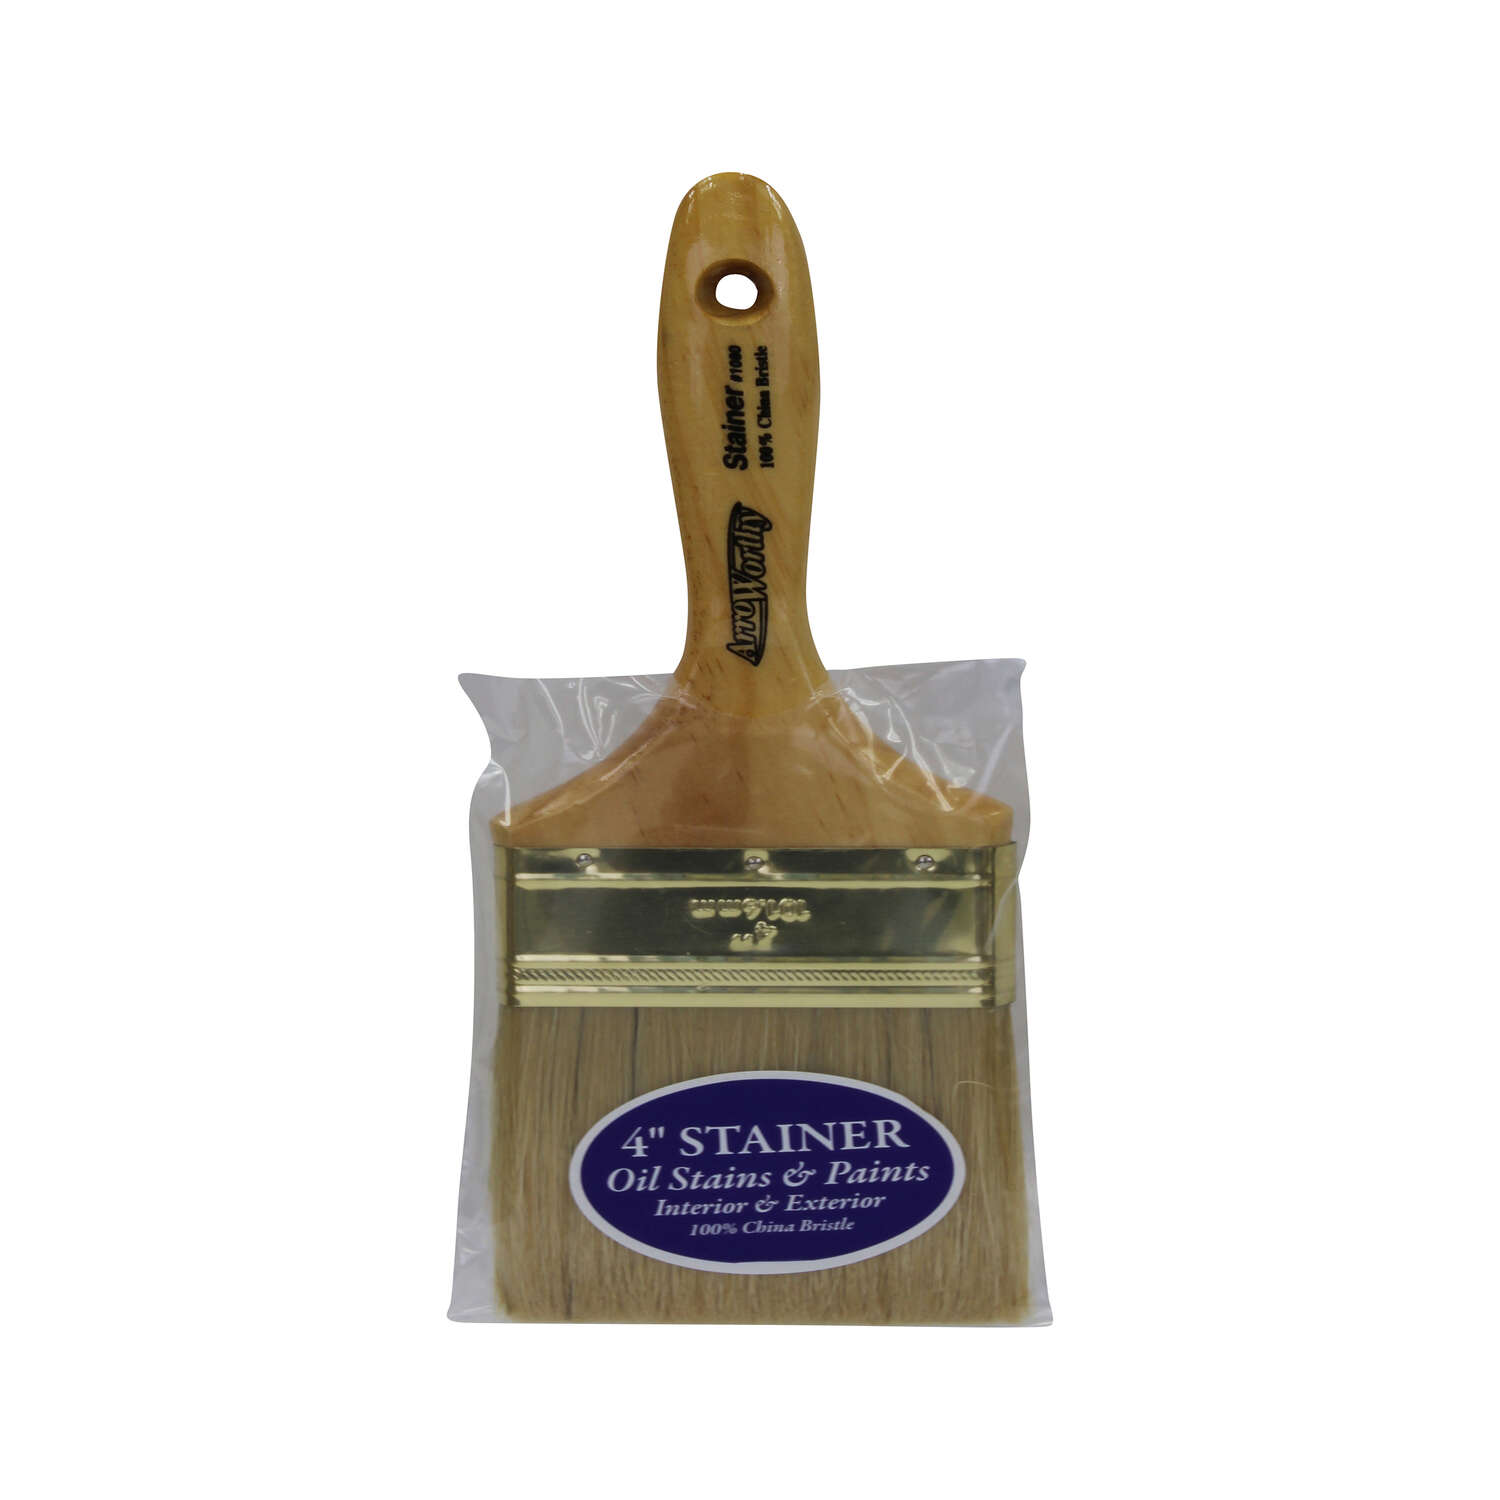 Arroworthy  Stainer  4 in. W Chiseled  Stain Brush